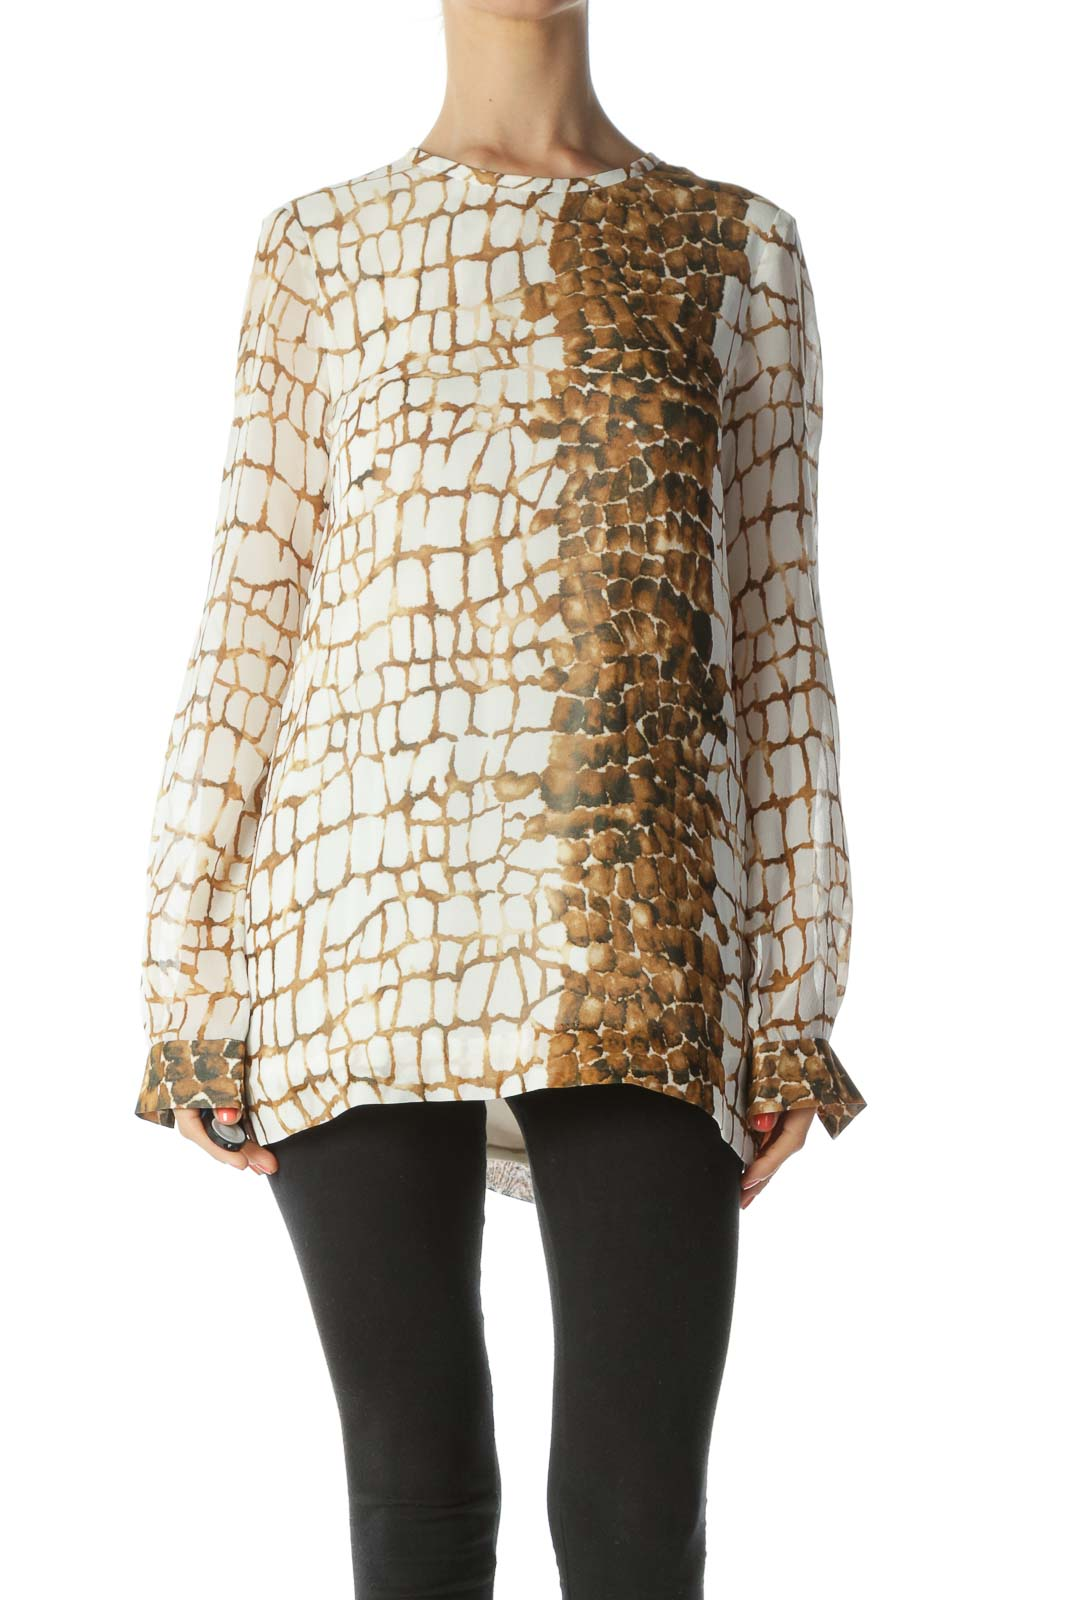 White & Brown Reptilian-Print 100% Silk Long-Sleeve Designer Blouse